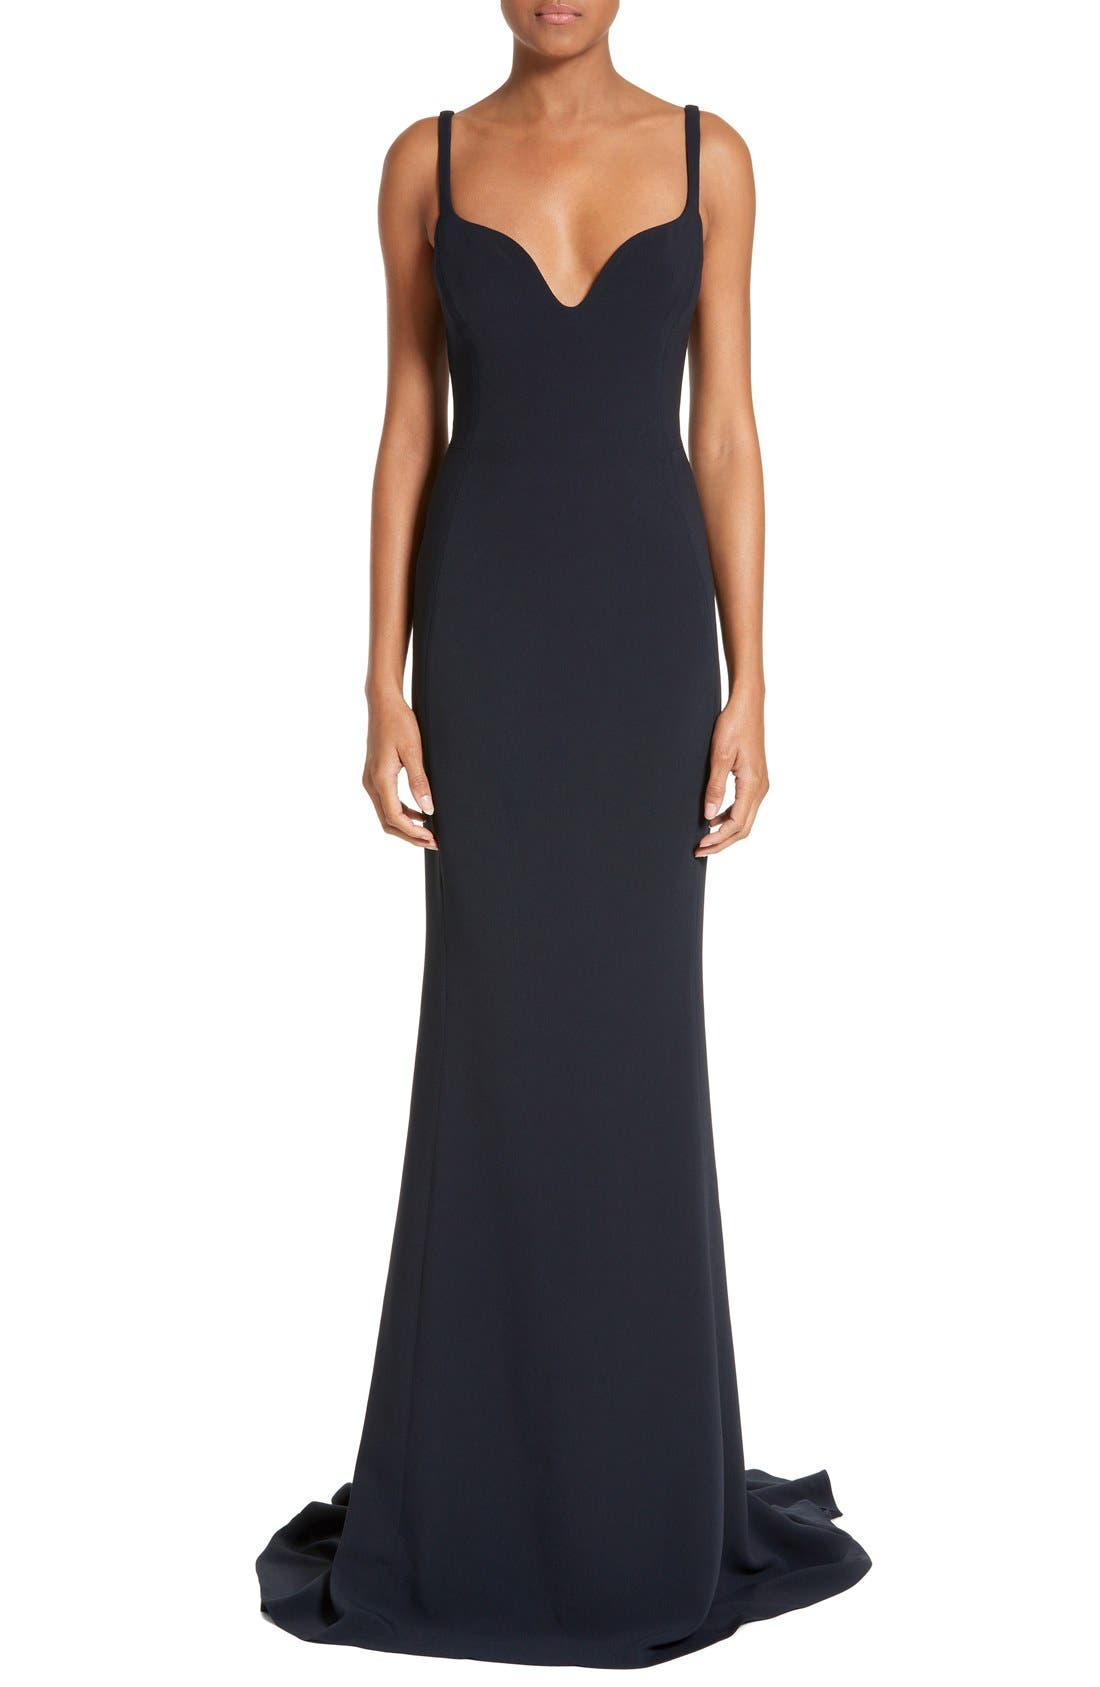 Main Image - Stella McCartney Sweetheart Neckline Gown